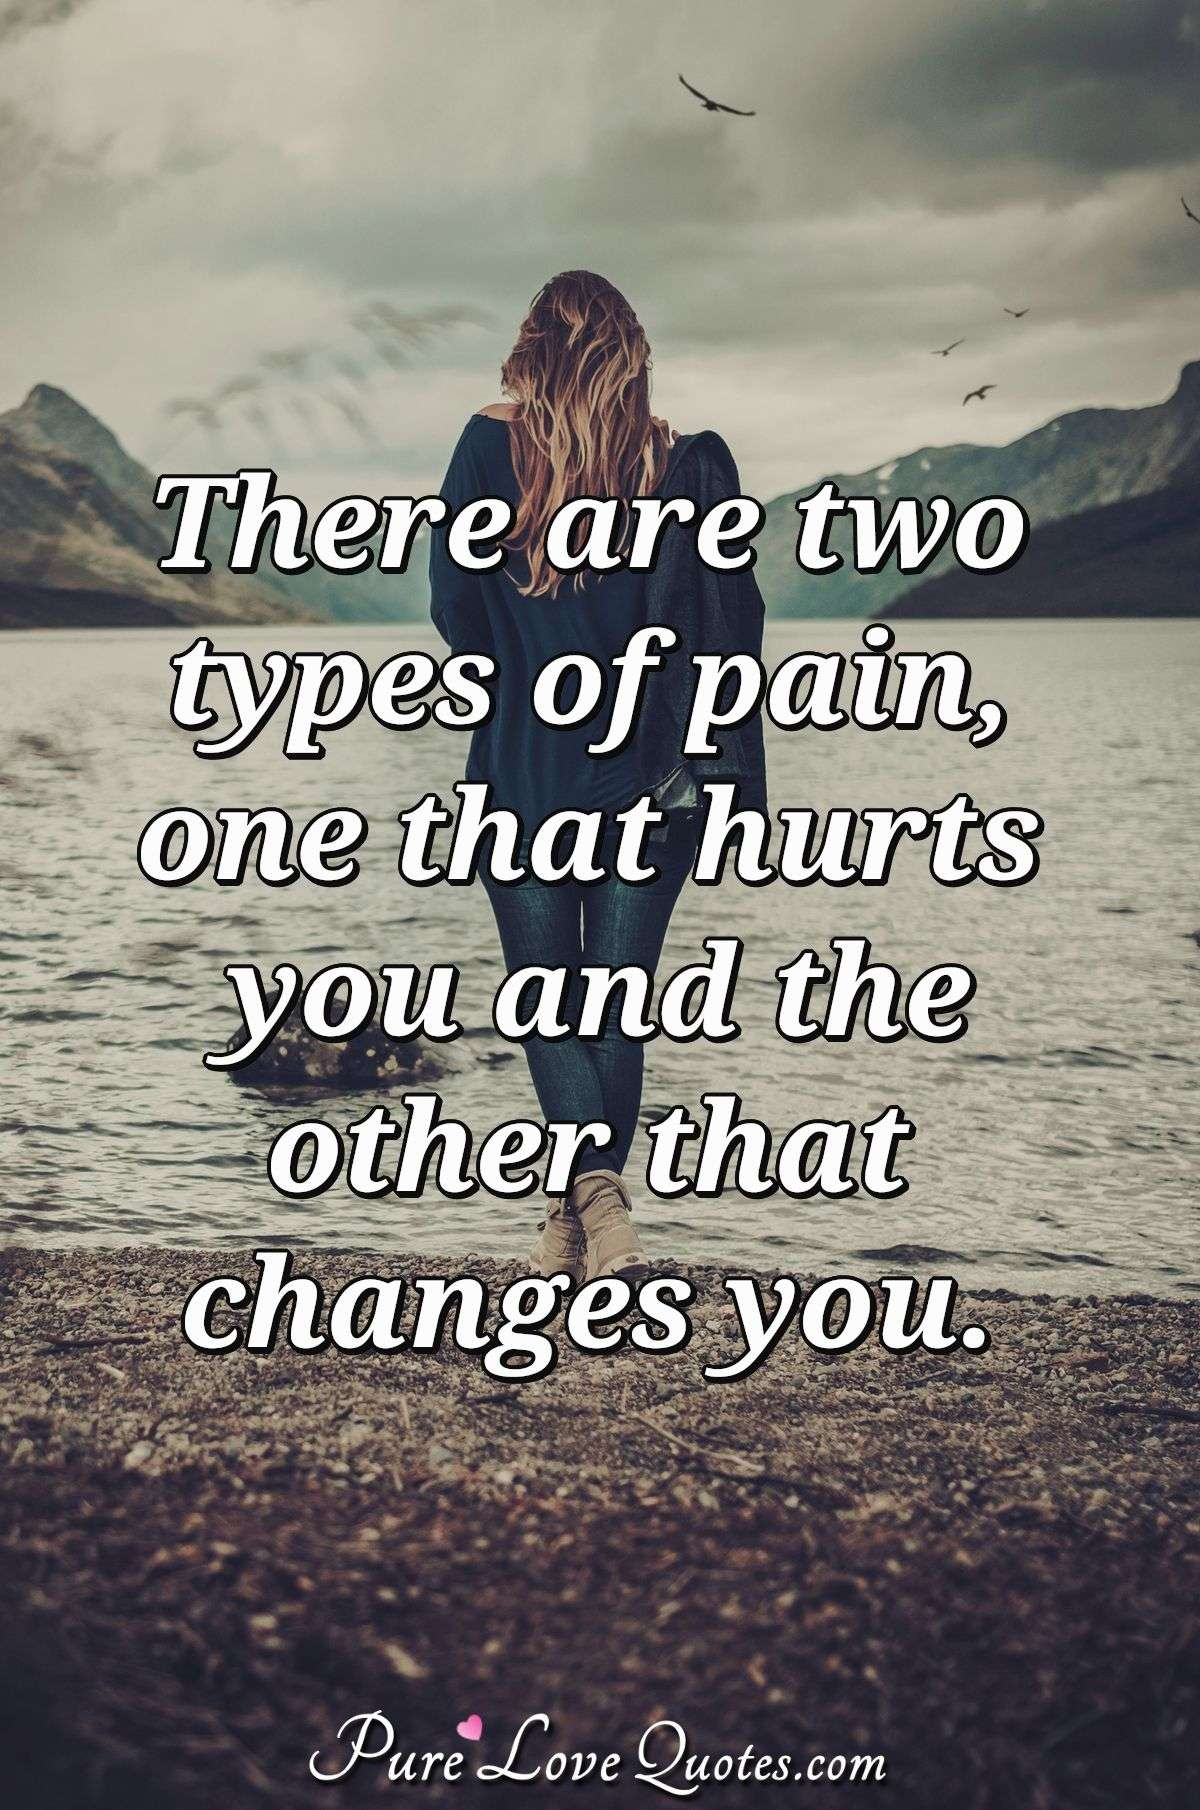 Quote About Painful Love : quote, about, painful, There, Types, Pain,, Hurts, Other, Changes, PureLoveQuotes